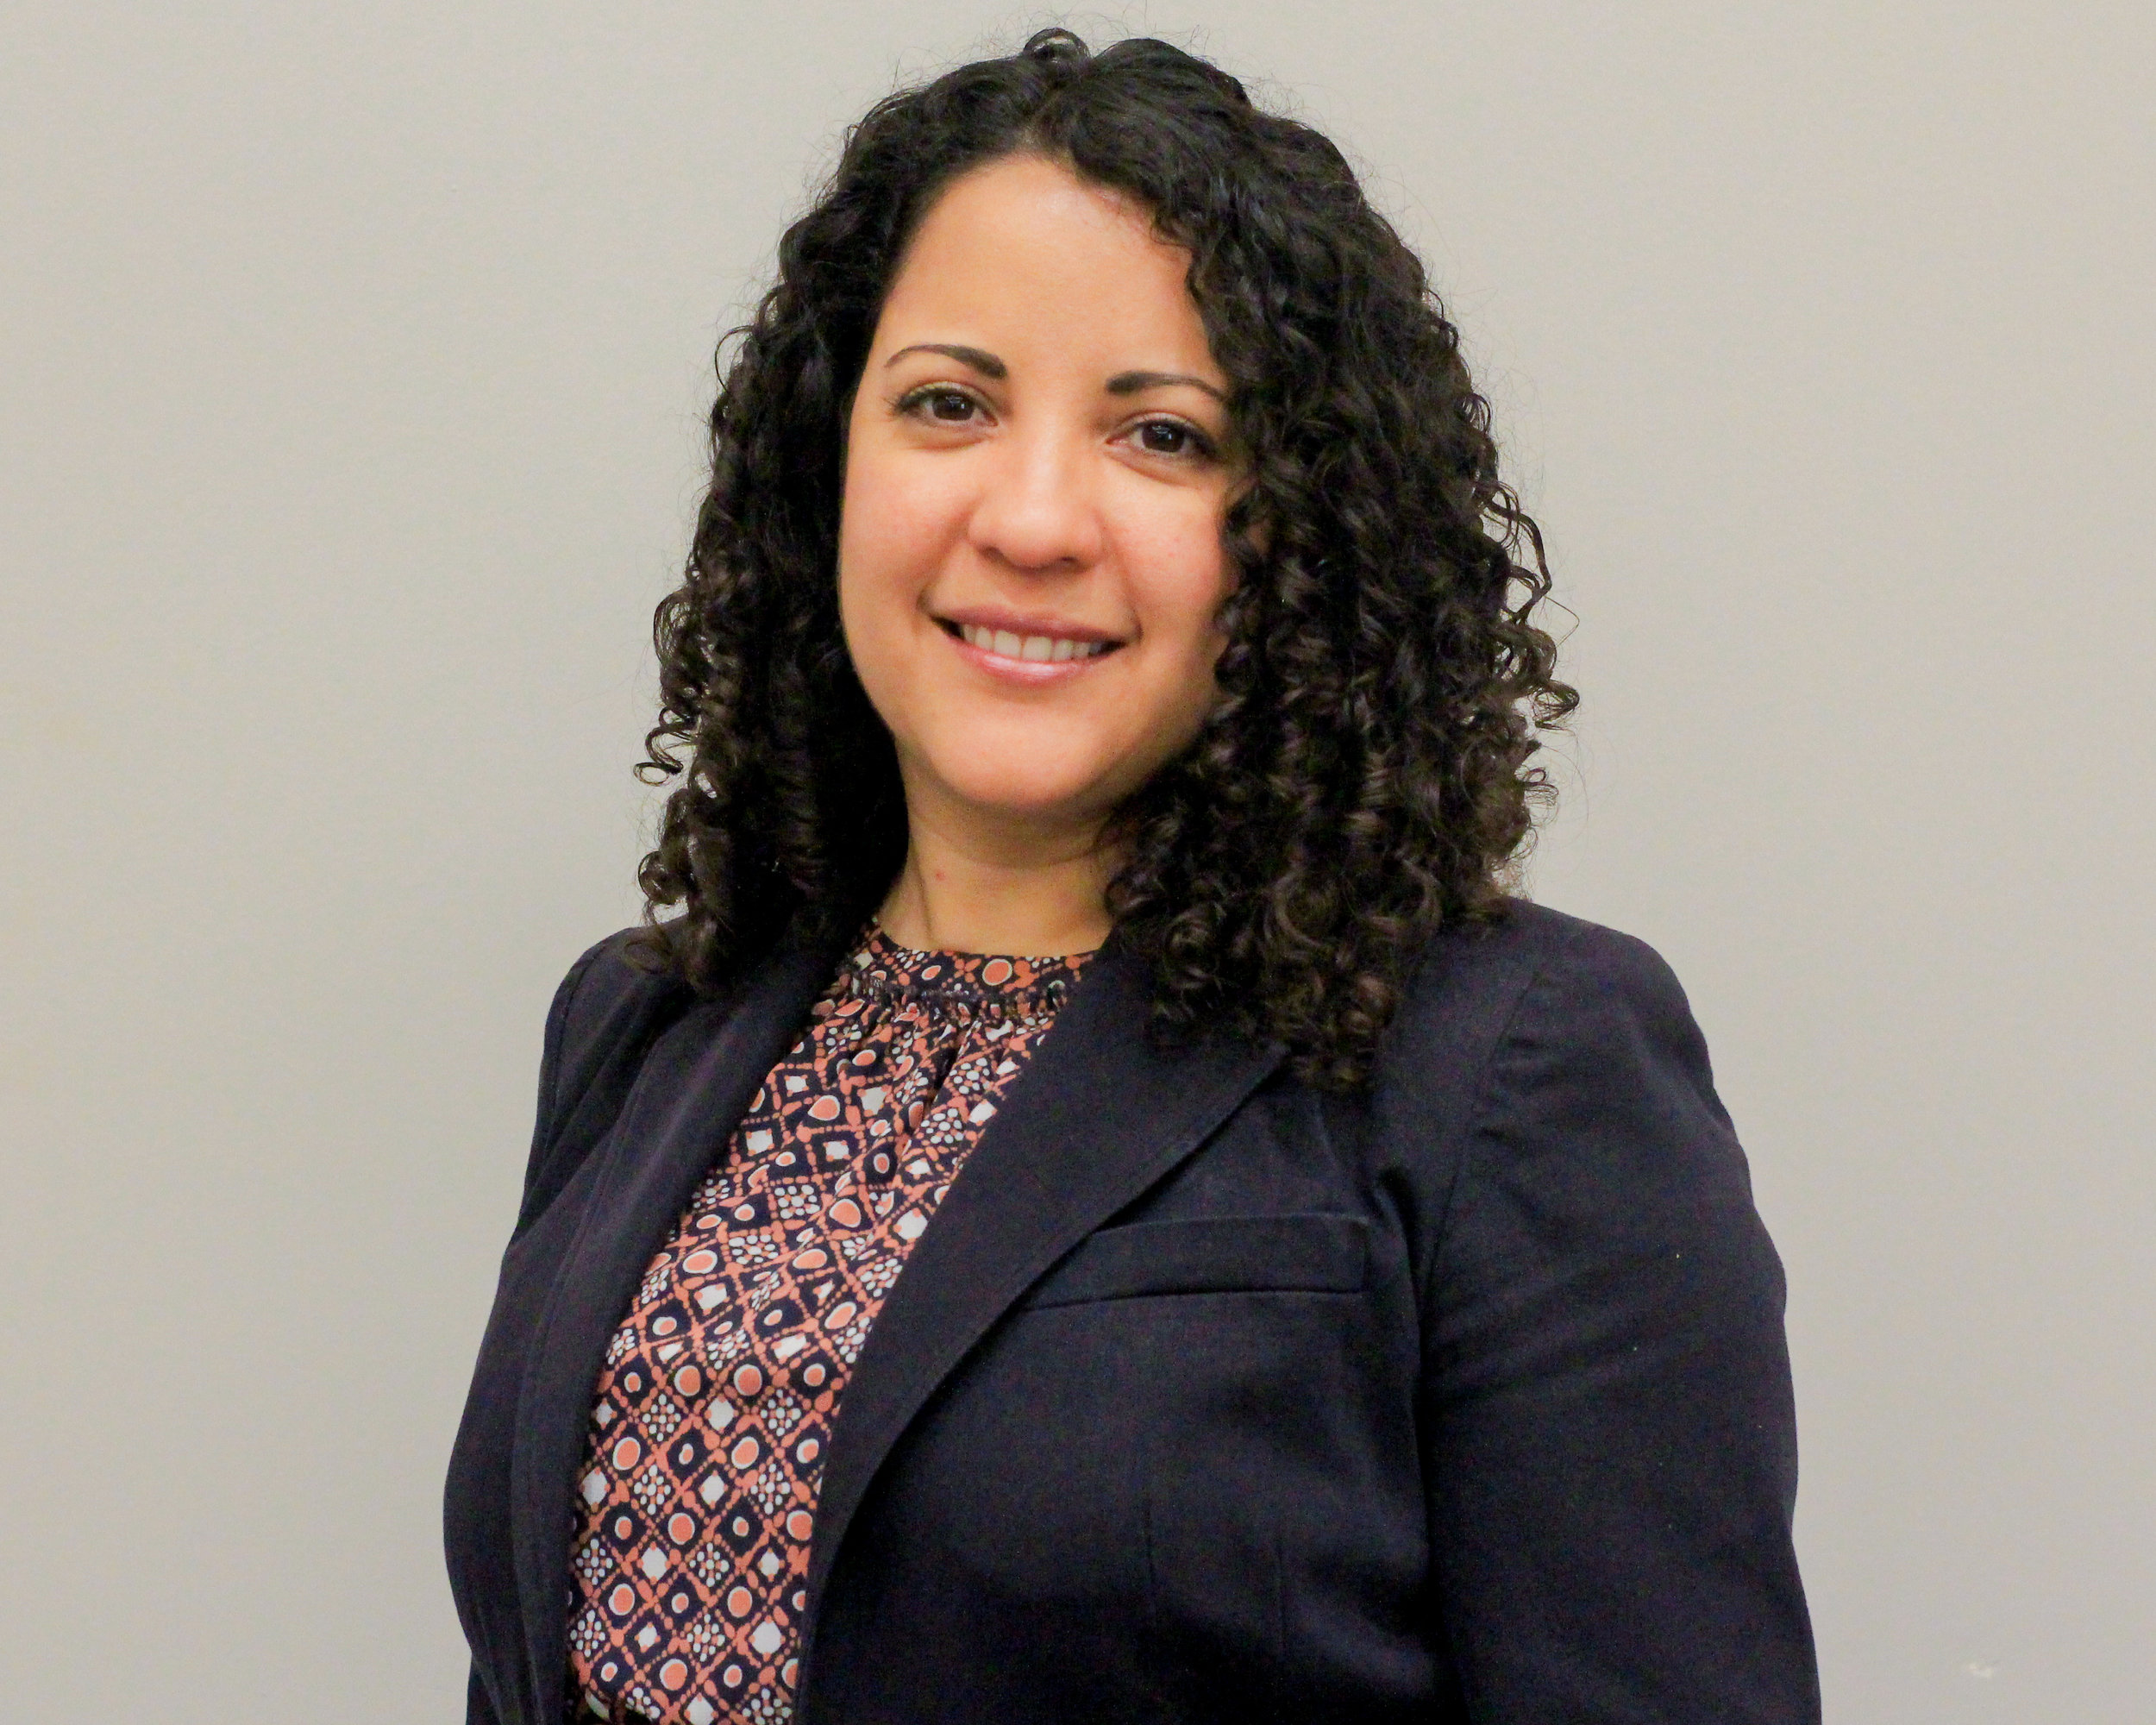 Patrisha Tijerina, Trial Attorney, U.S. Department of Housing & Urban Development